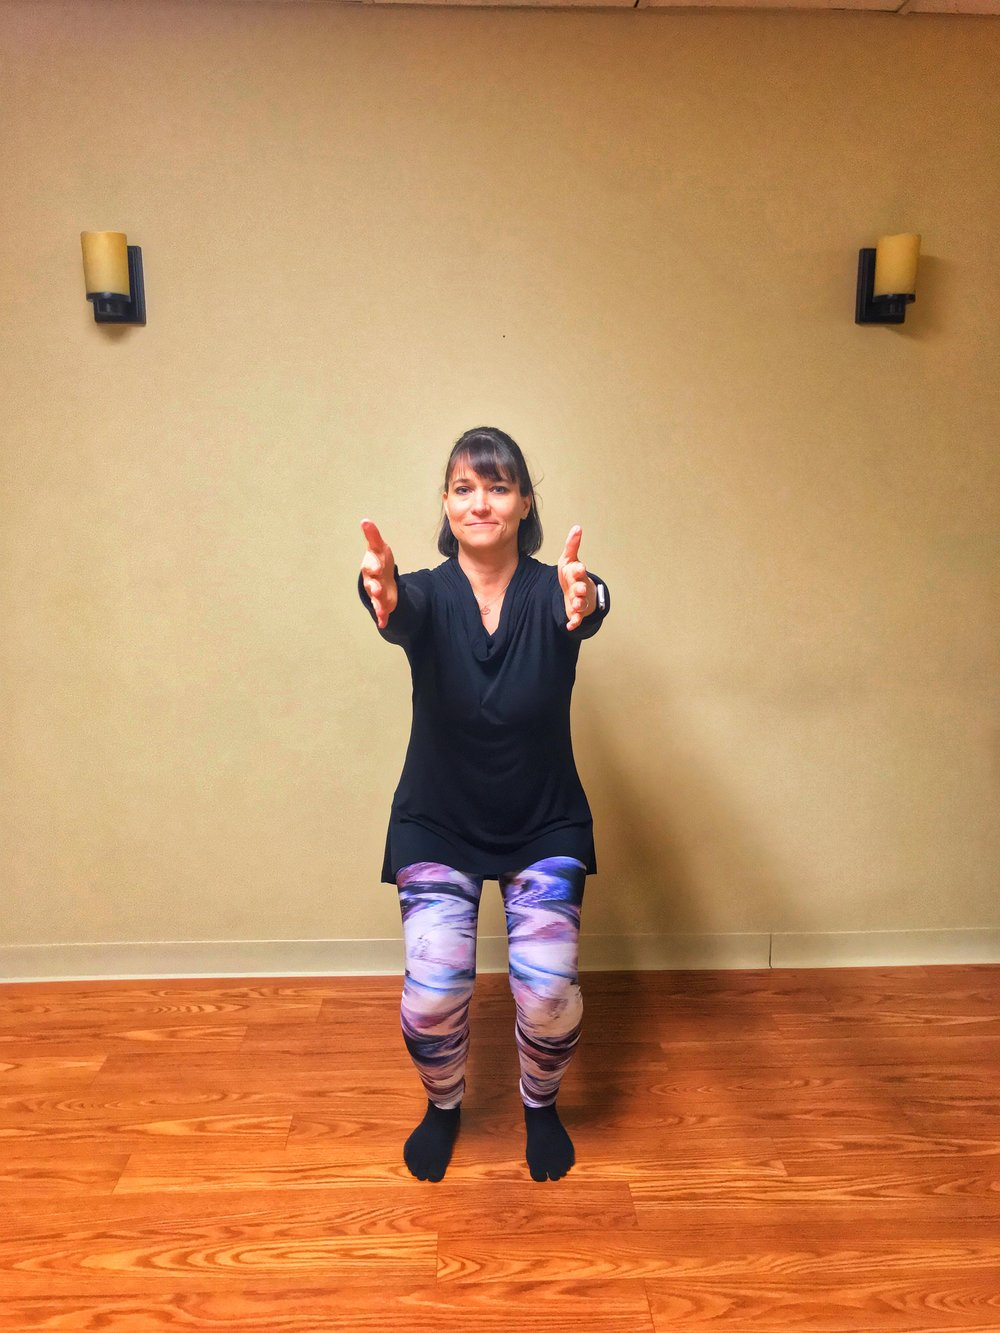 Lean forward slightly and slowly stand up. Maintain control during movement. Press your heels into the floor and tighten your buttocks as you stand to help you balance. Exhale as you stand, inhale as you sit back.